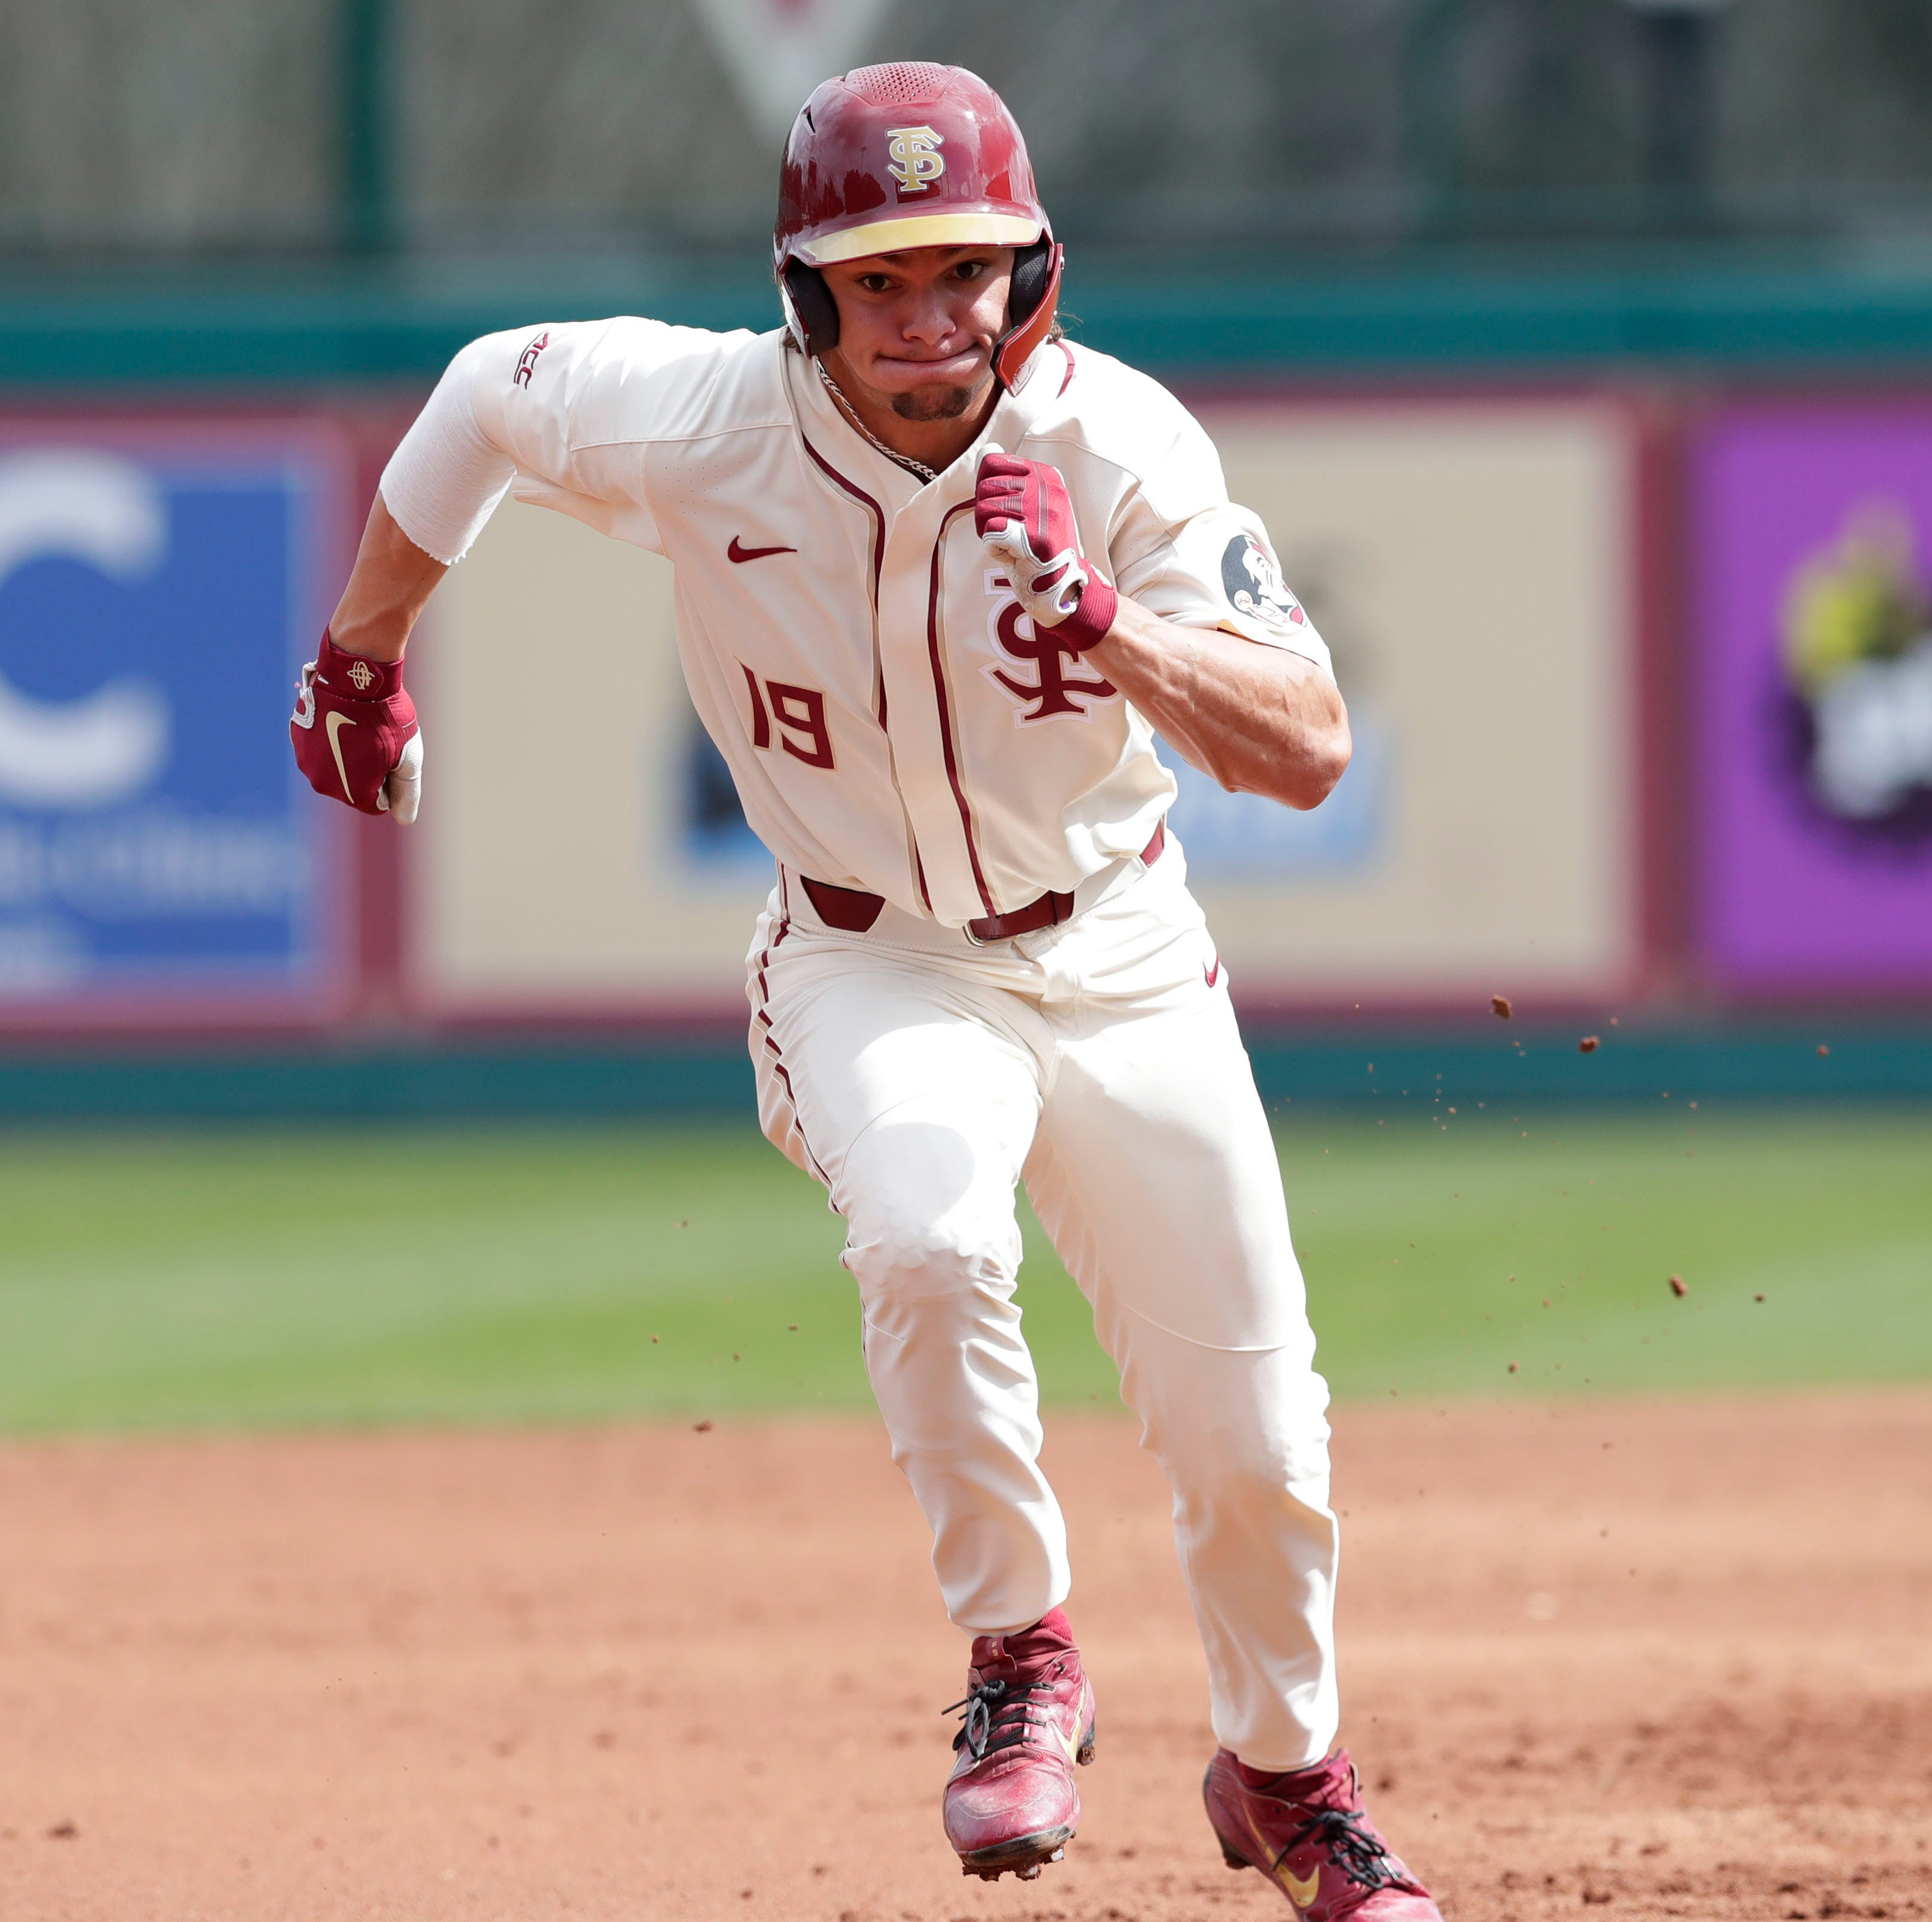 Freshmen shine as Florida State sweeps doubleheader against Maine